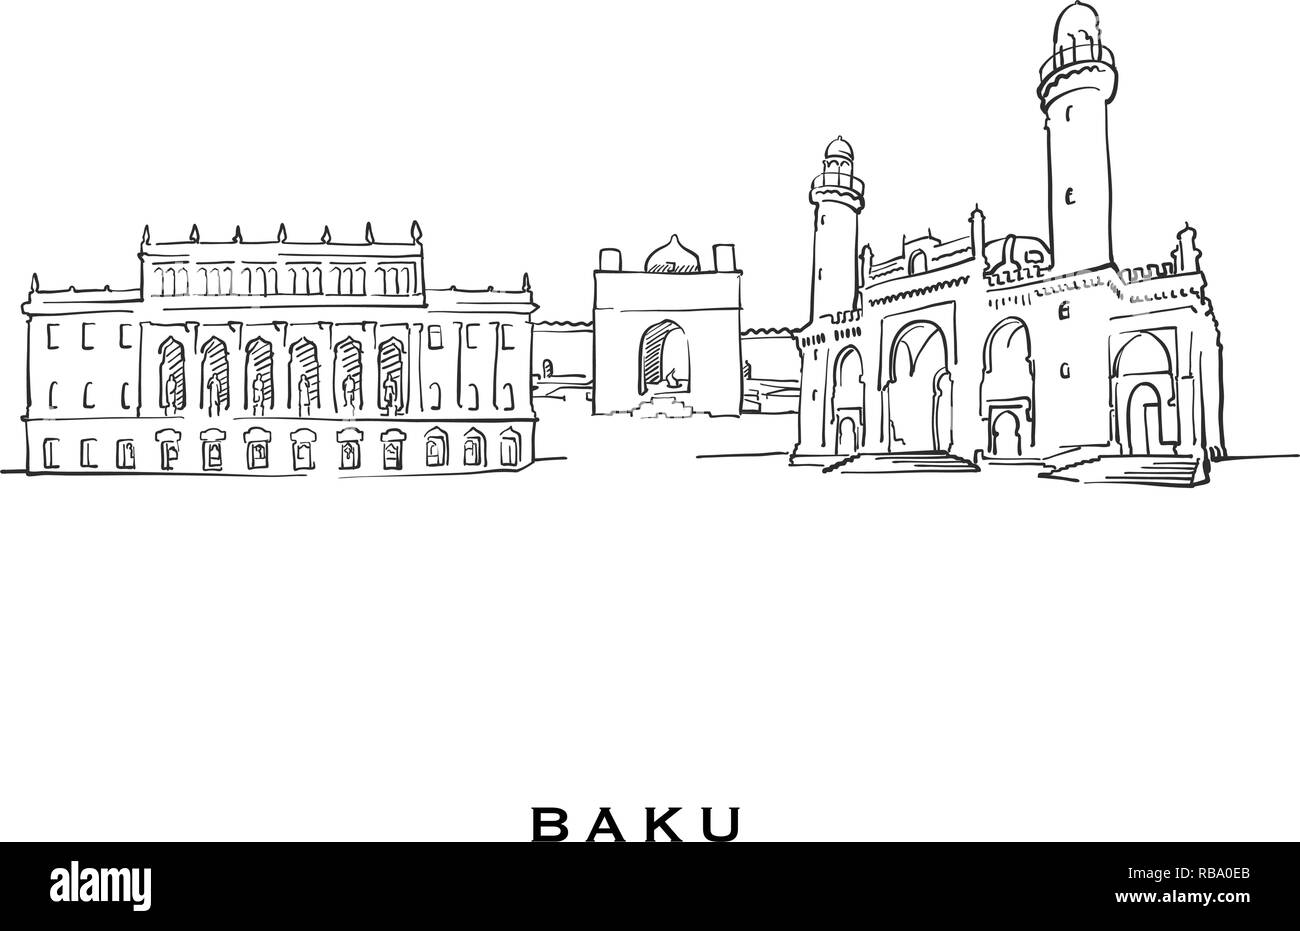 Baku Azerbaijan famous architecture. Outlined vector sketch separated on white background. Architecture drawings of all European capitals. - Stock Vector